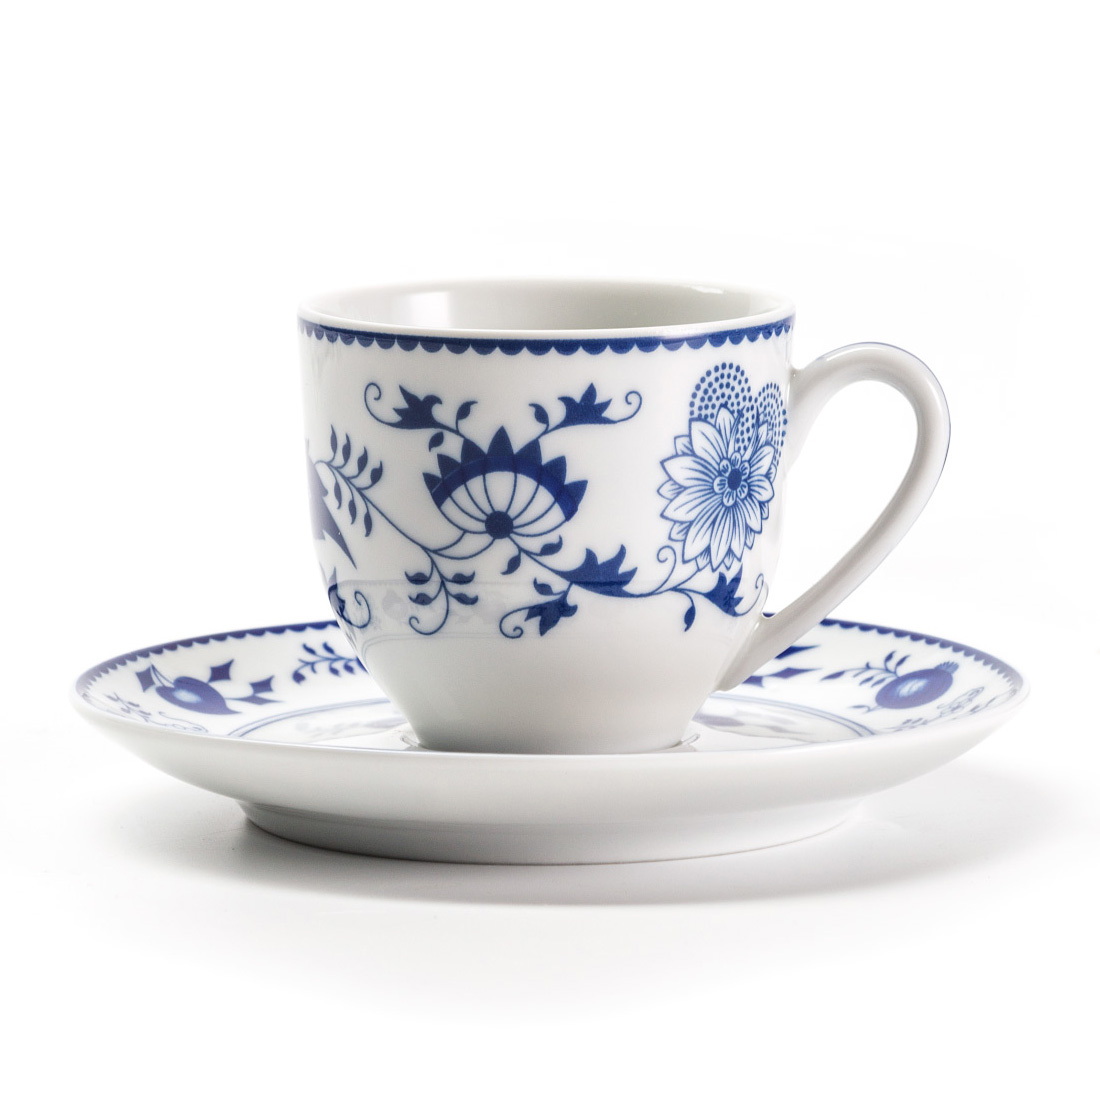 Кофейная пара Onion blue, 100 мл, Фарфор, Tunisian Porcelain, Onion Blue